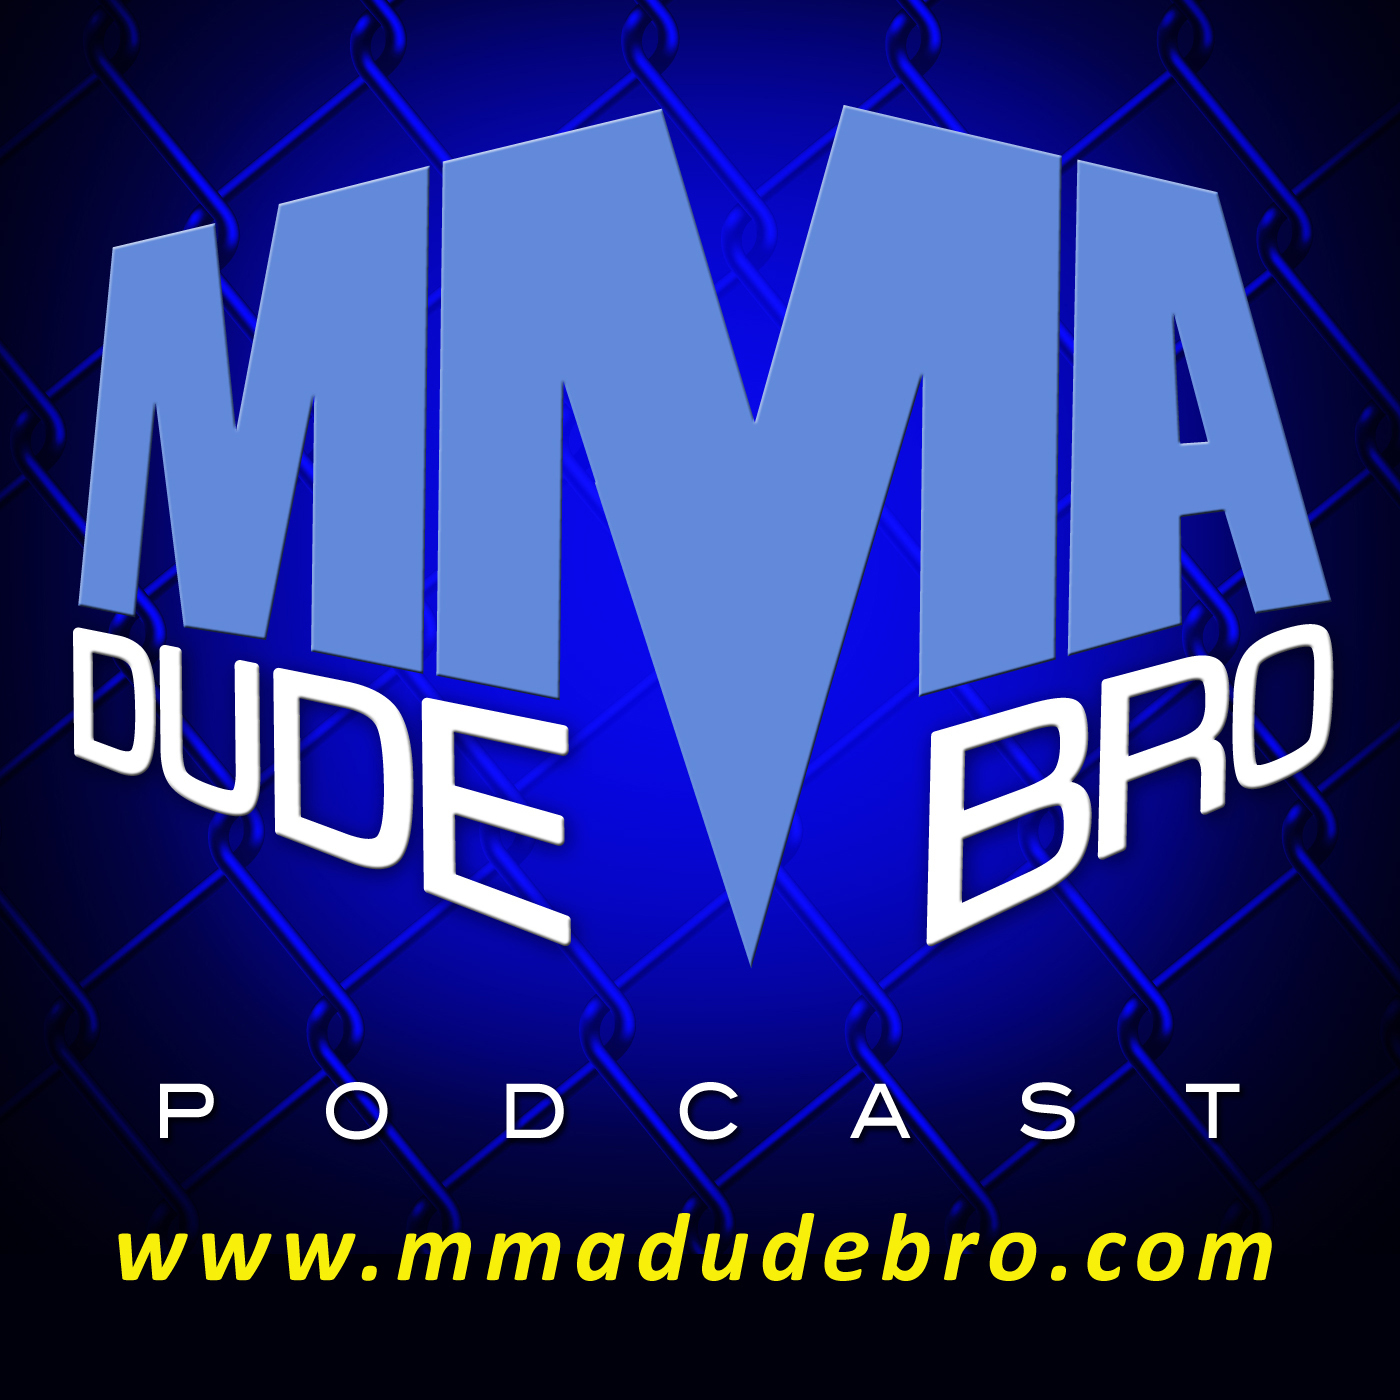 MMA Dude Bro - Episode 92 (with guest Tara LaRosa)